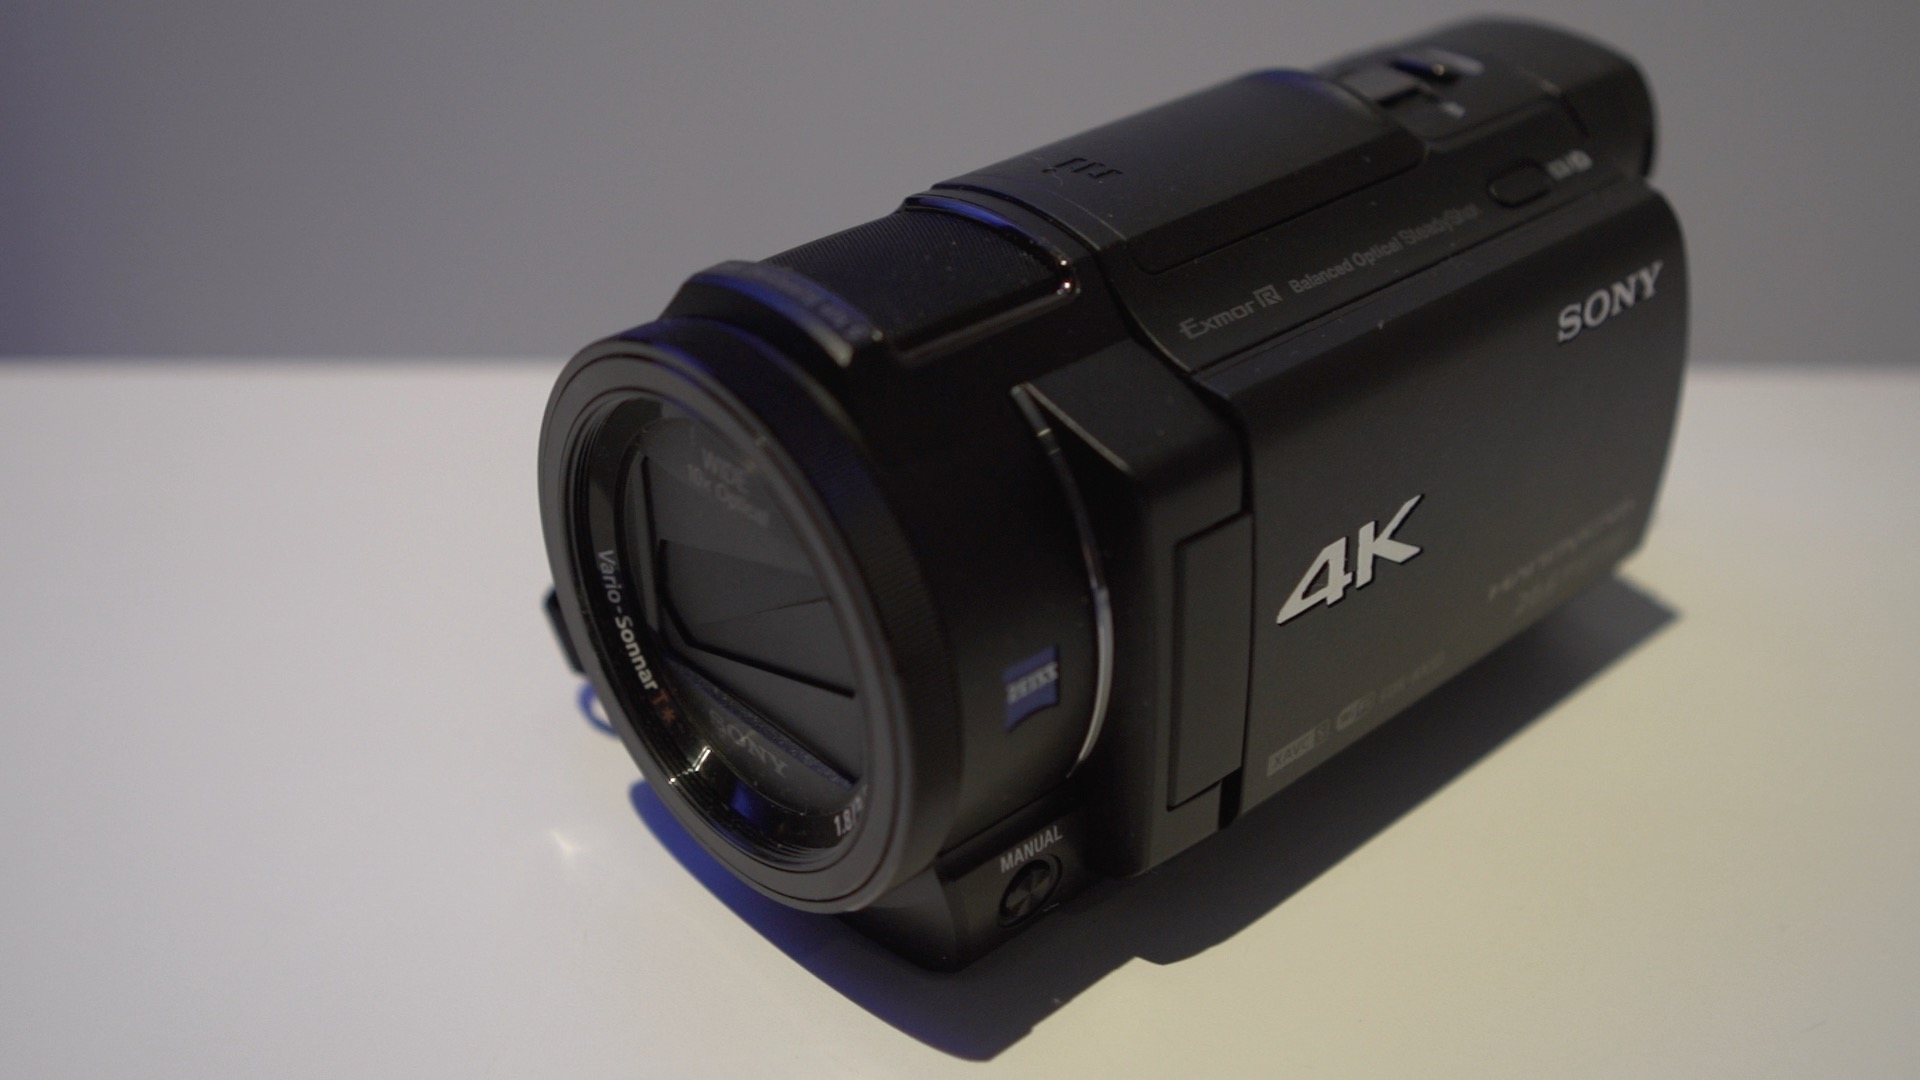 Video: Get a look at Sony's new 4K camcorder